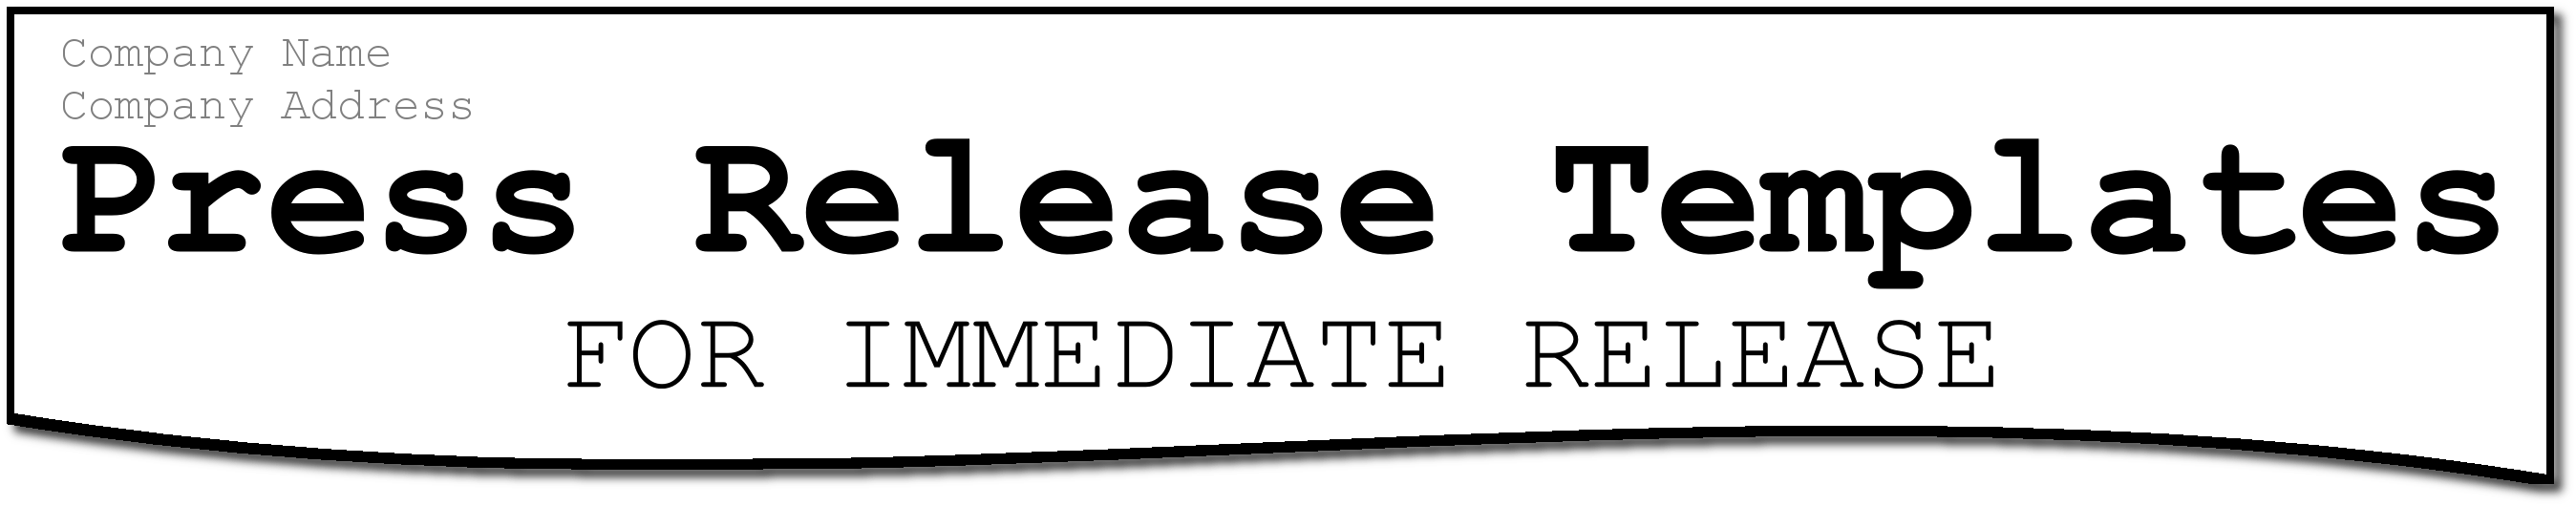 Press Release Templates